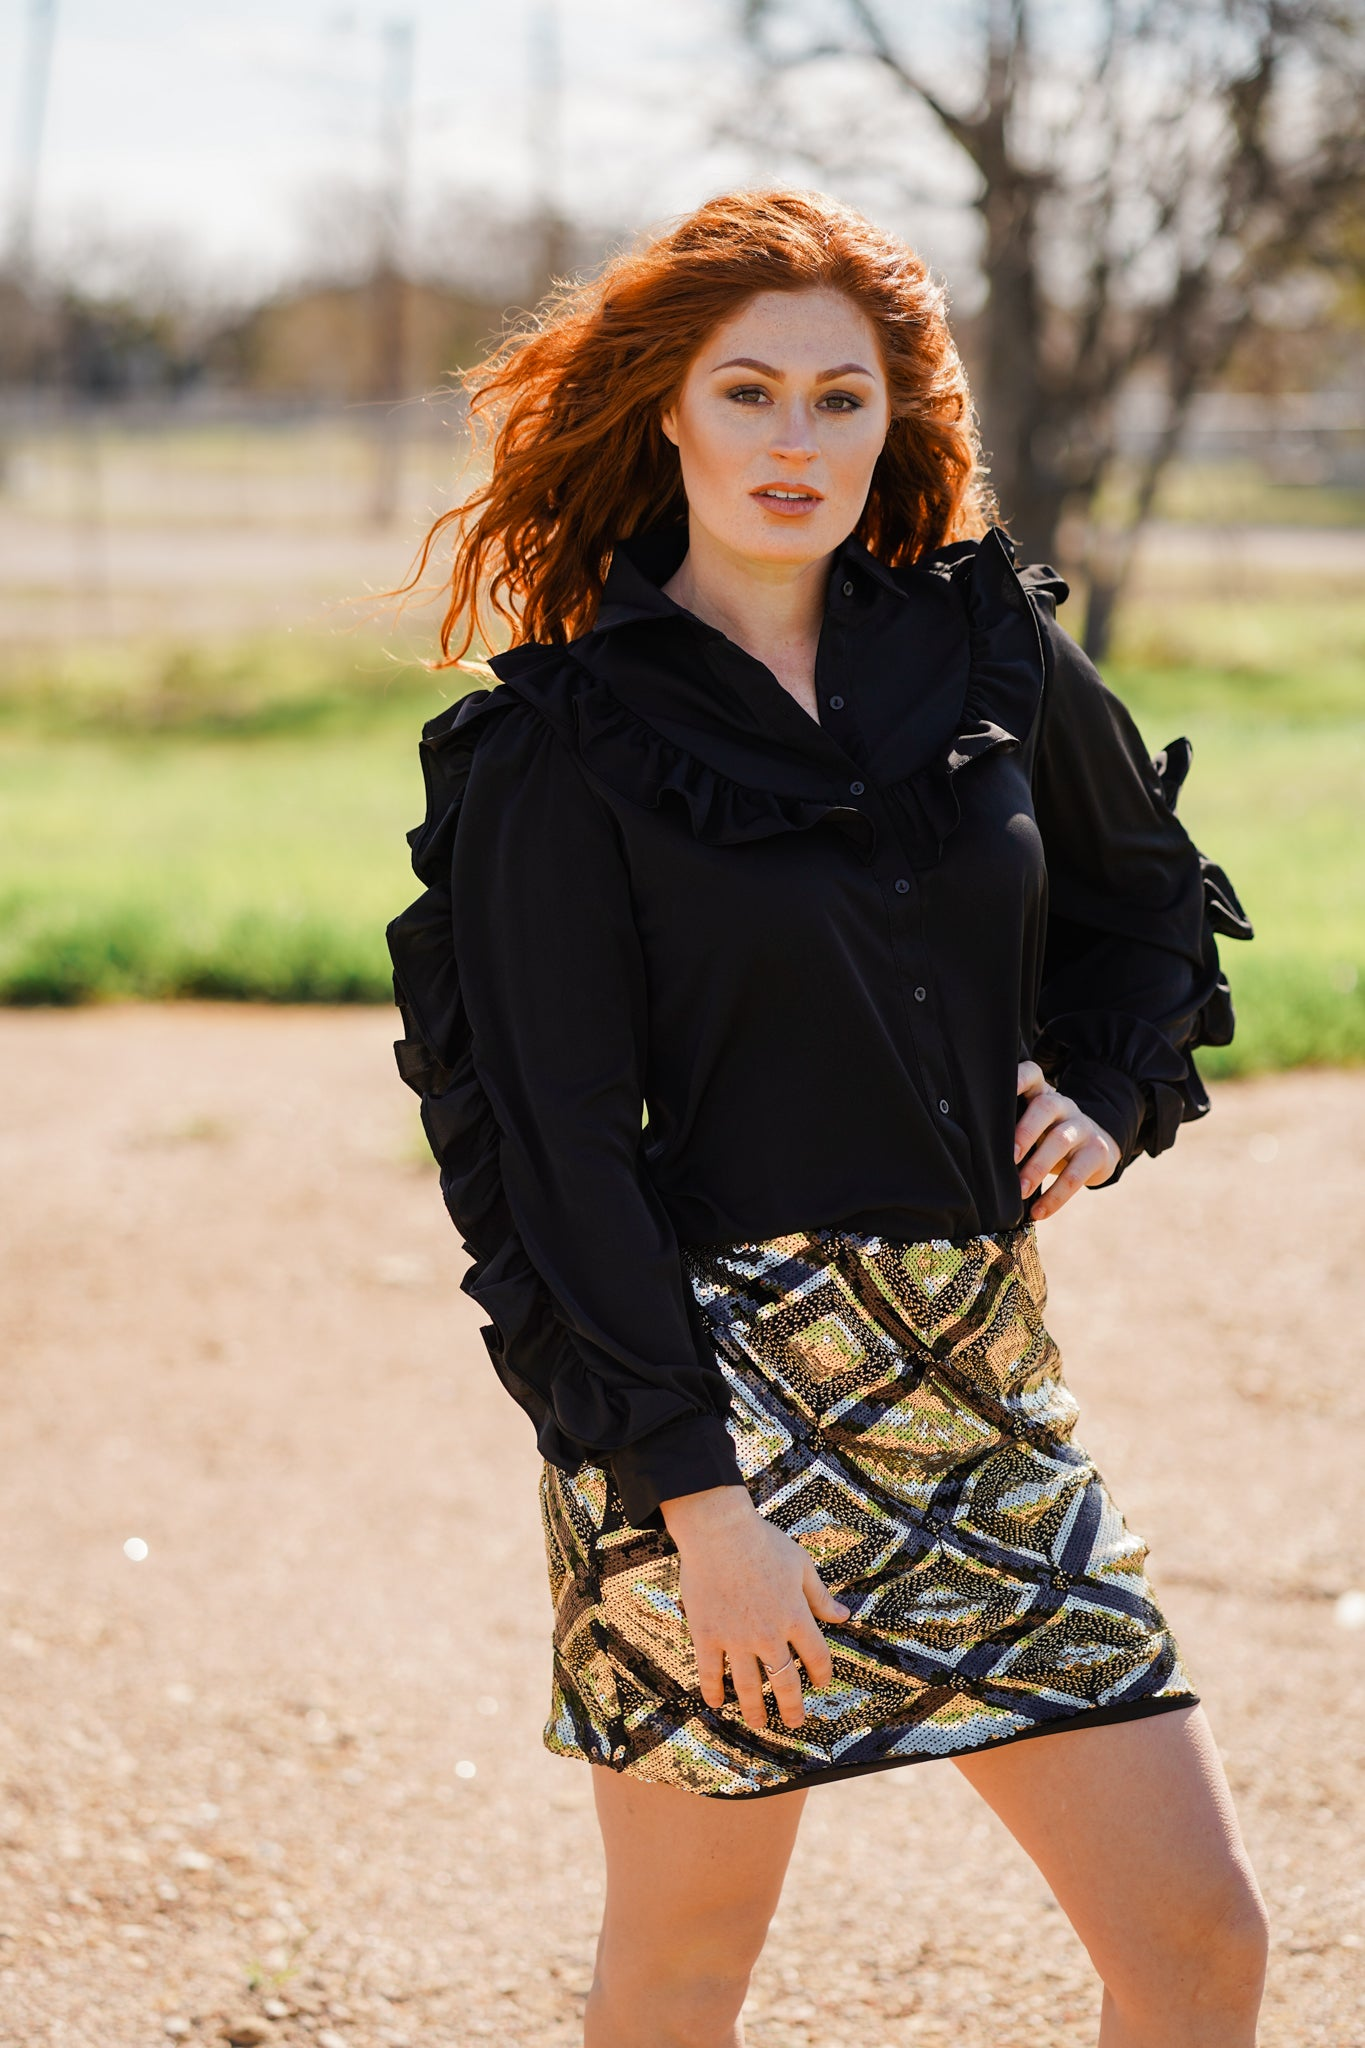 Ruffle Black Button Down Shirt - Pistols and Petticoats